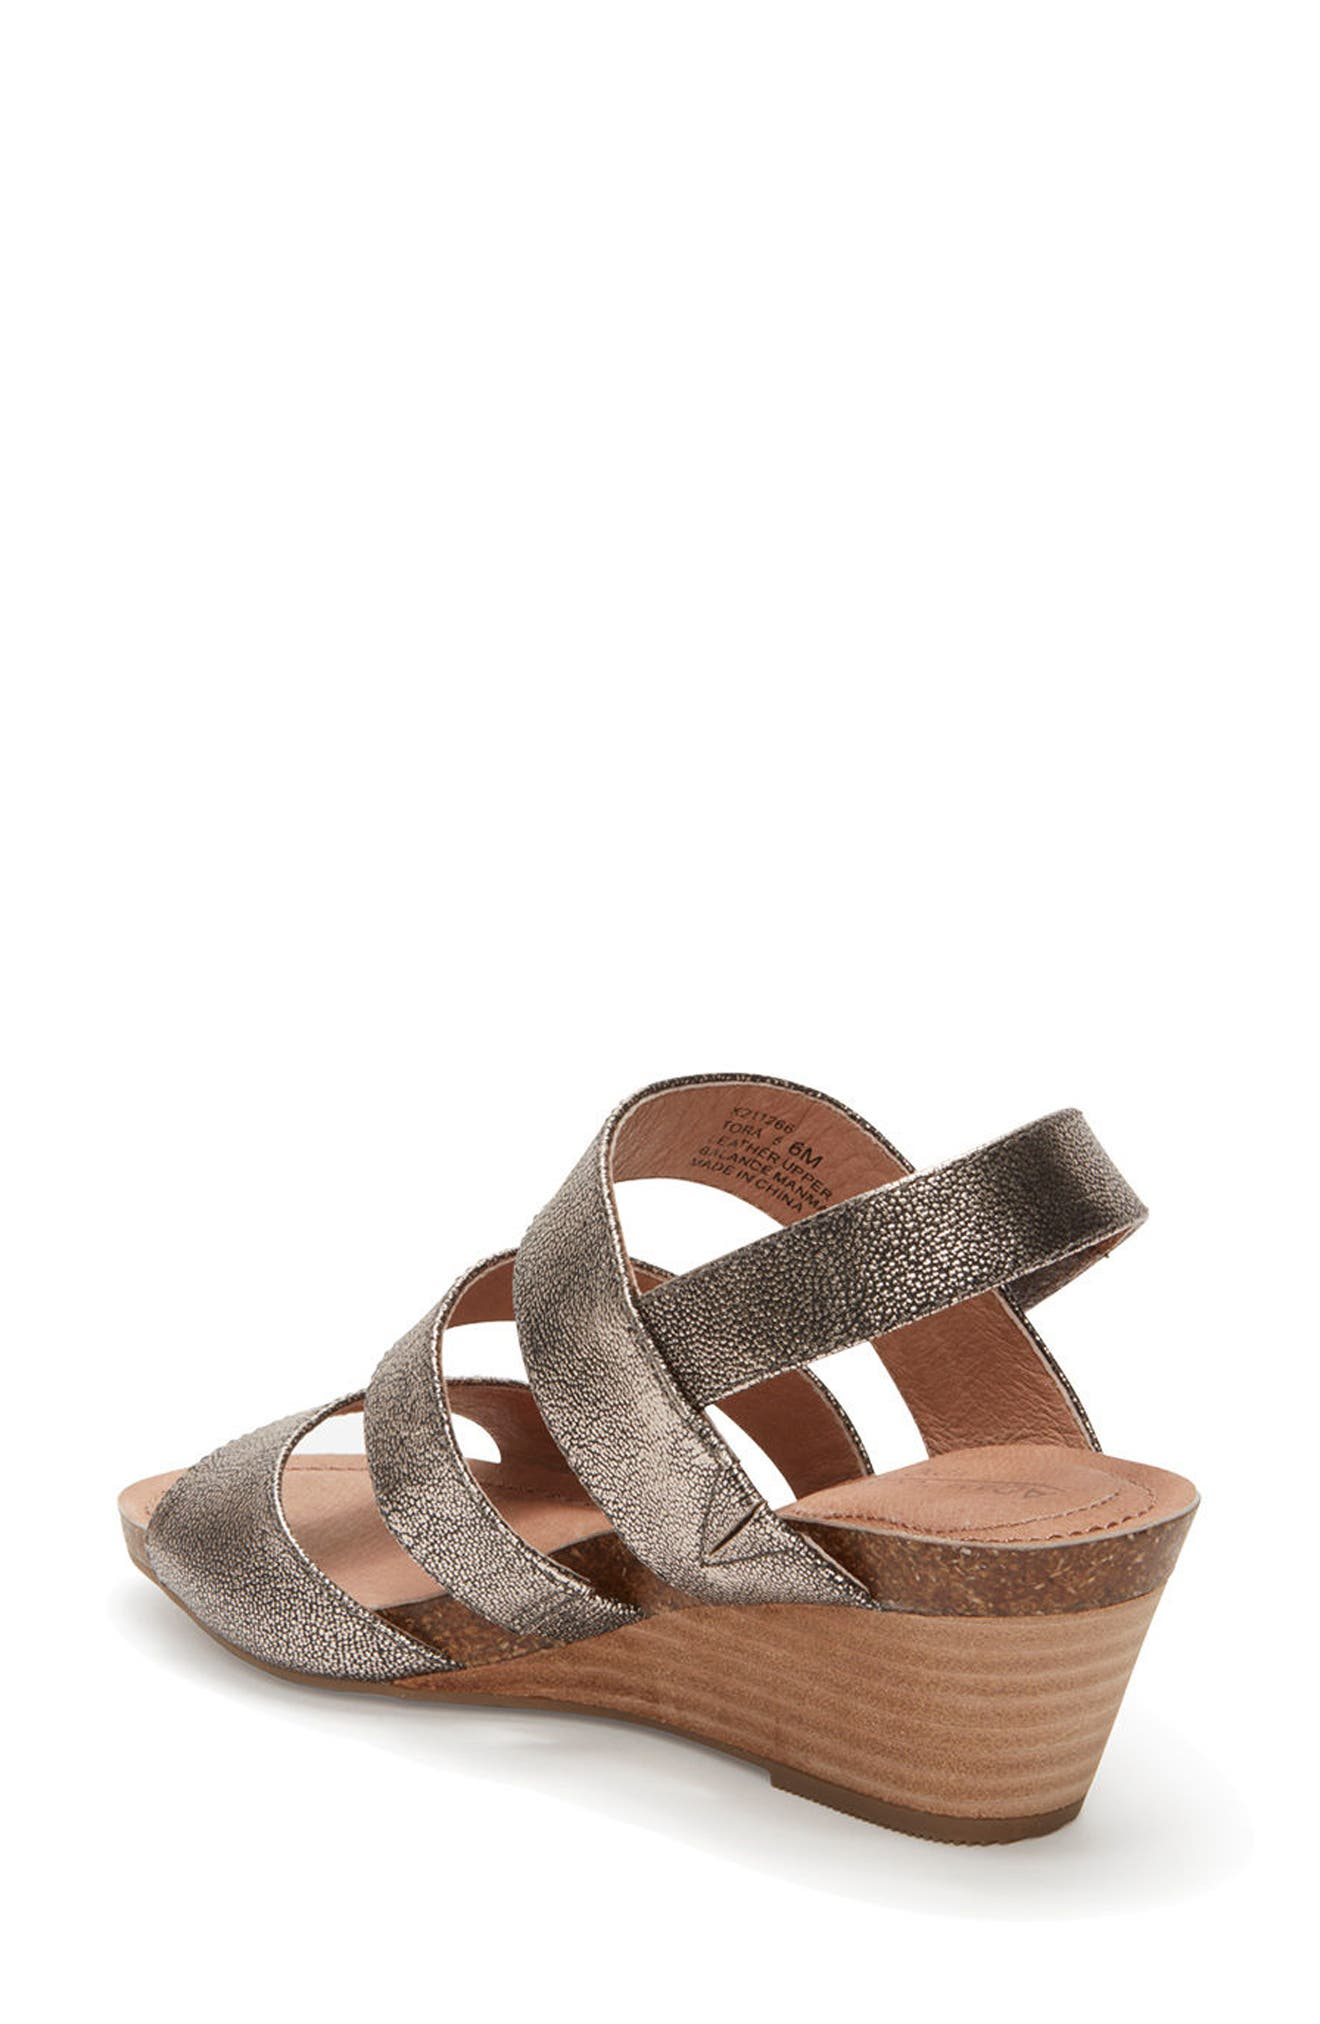 Adam Tucker Tora Wedge Sandal,                             Alternate thumbnail 4, color,